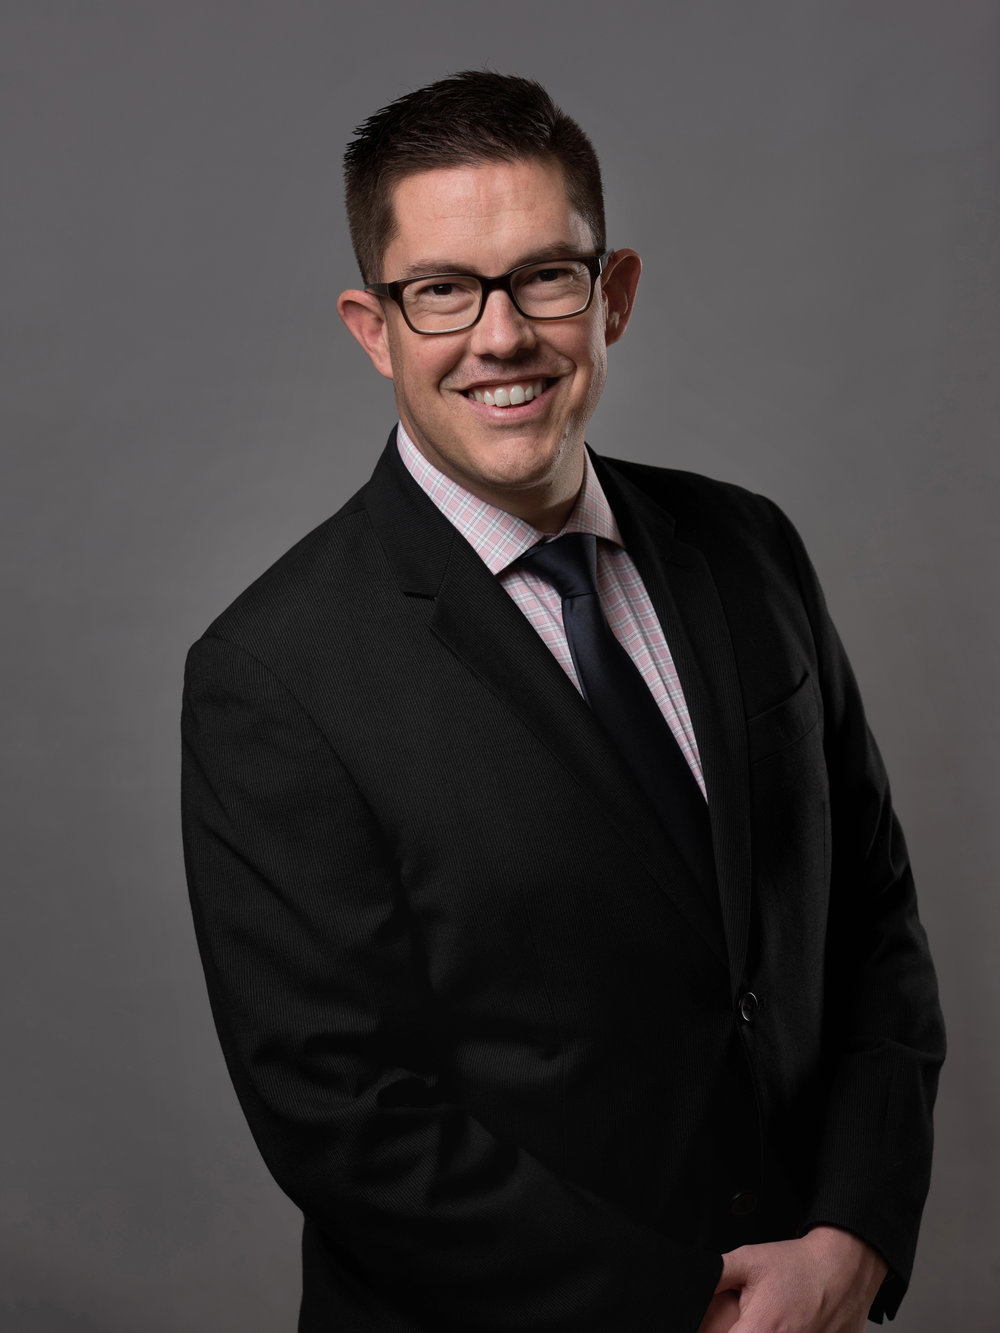 Smiling bespectacled man in a black business suit